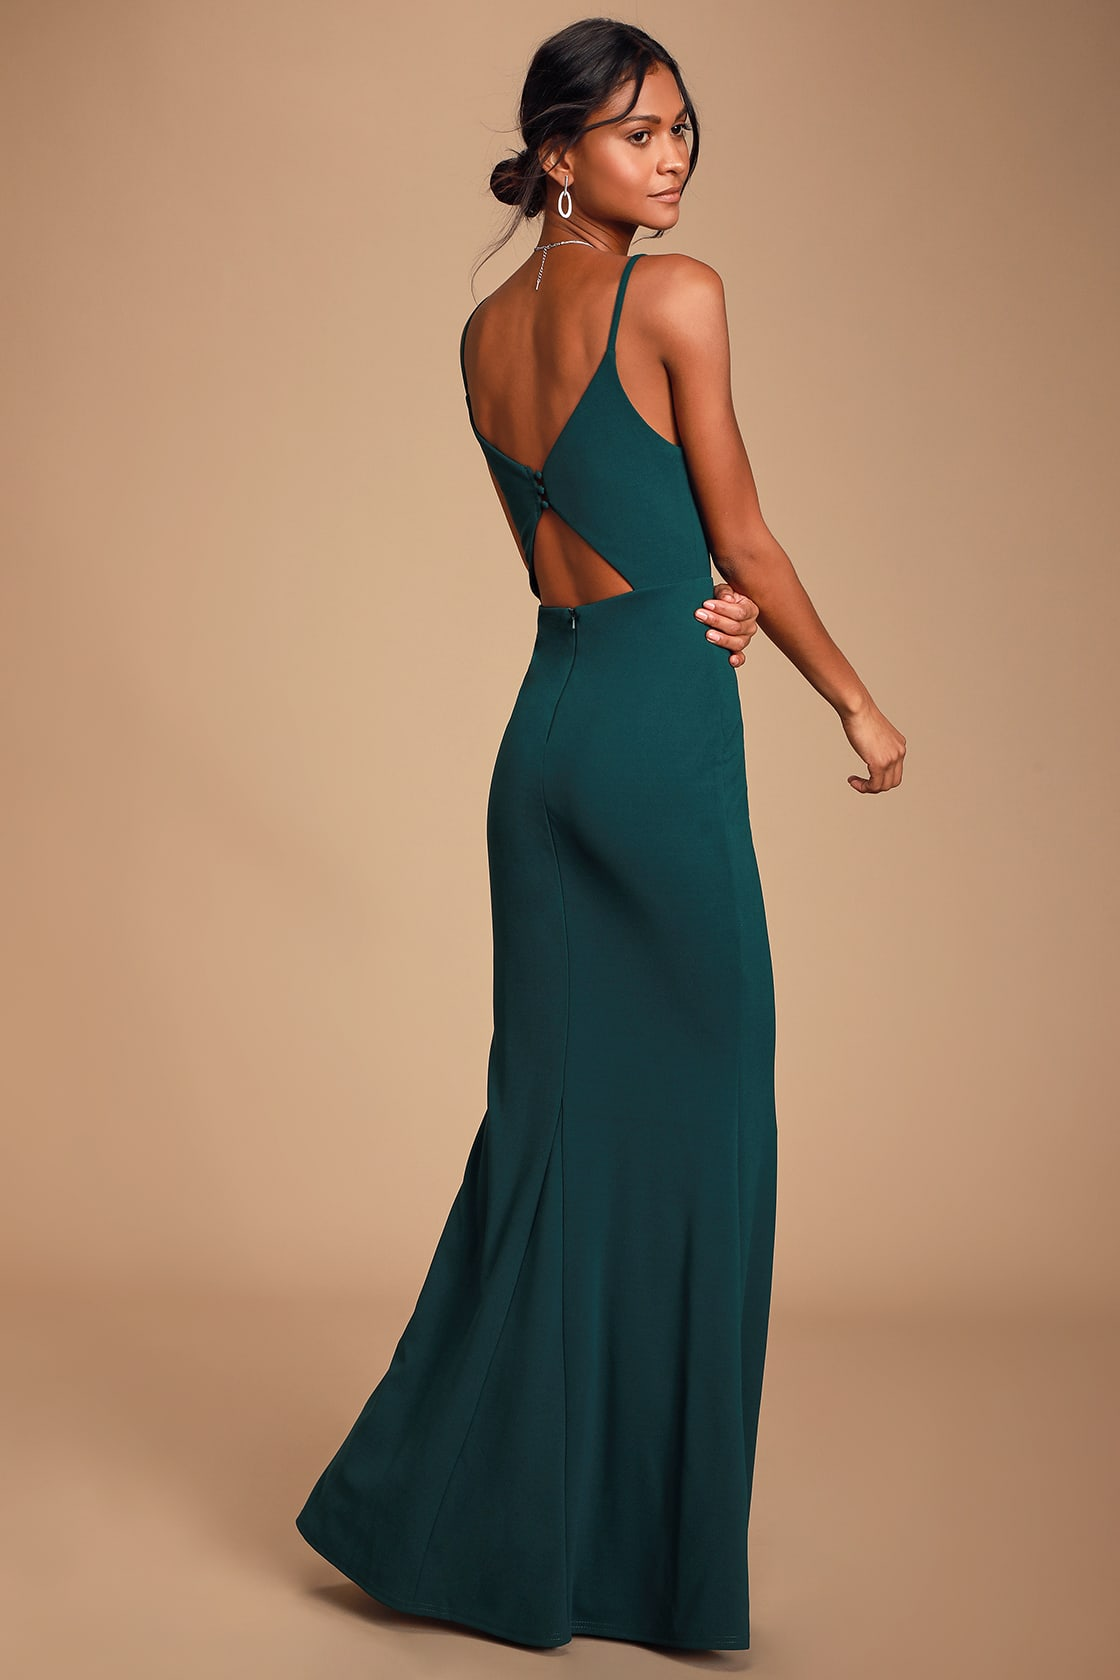 Moments Of Bliss Forest Green Backless Mermaid Maxi Dress